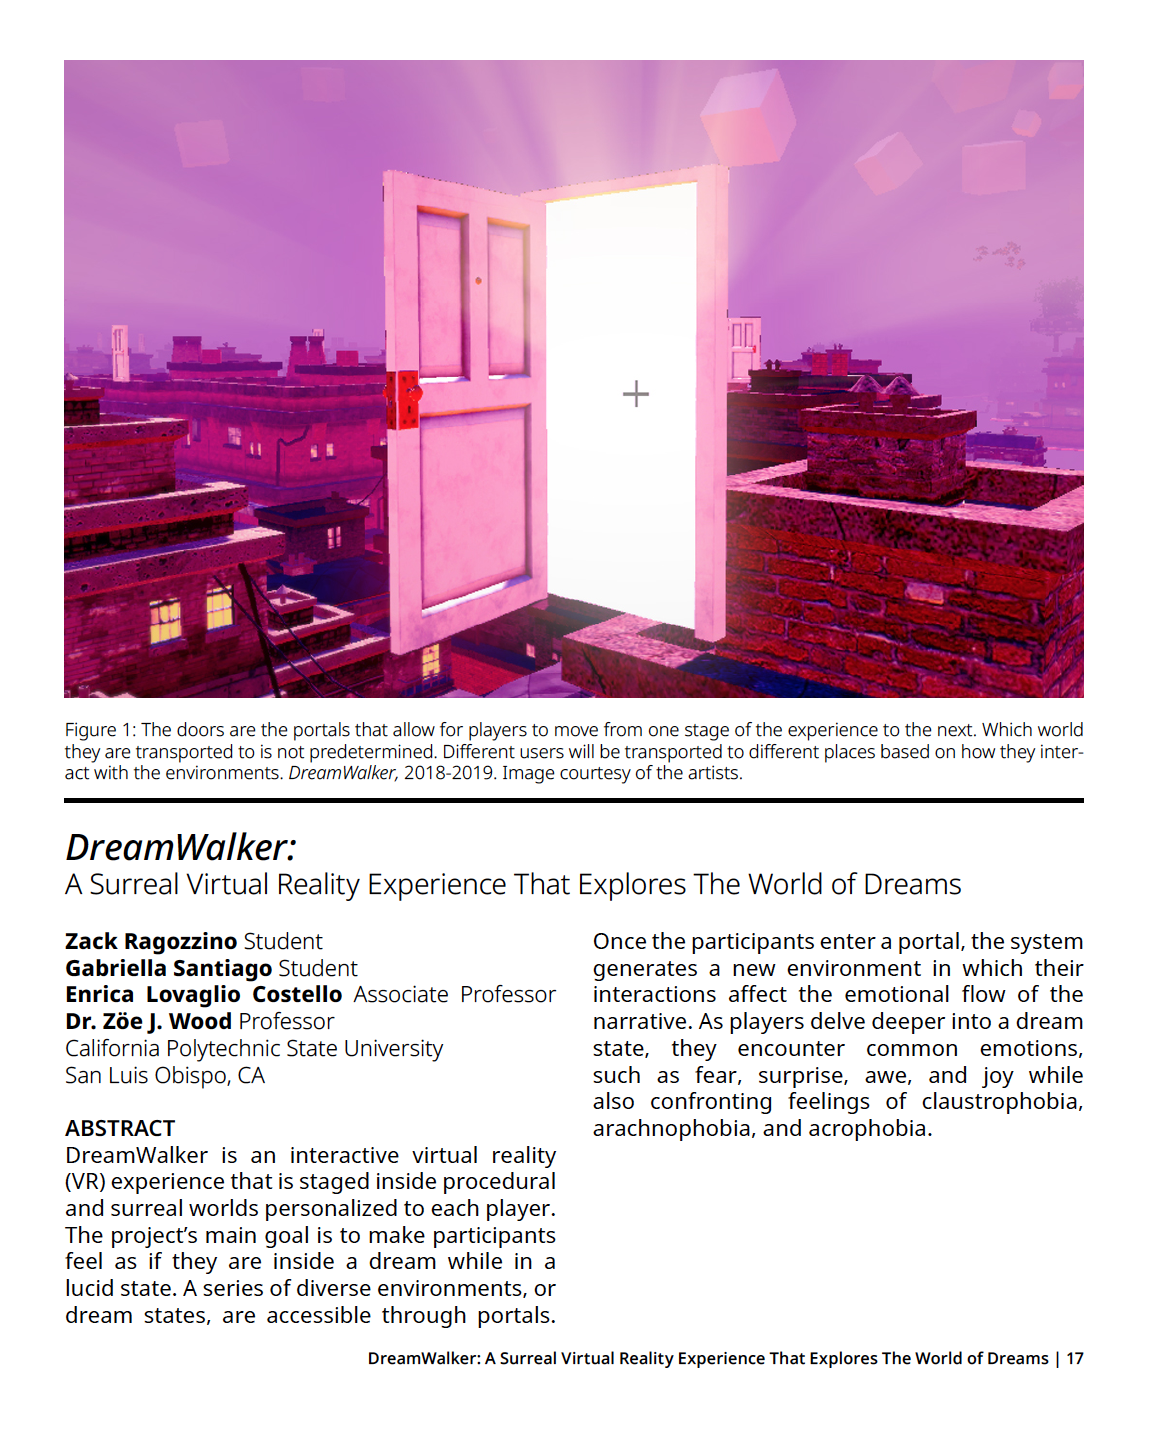 Abstract of Dreamwalker Article and Image of an open door with light shining through